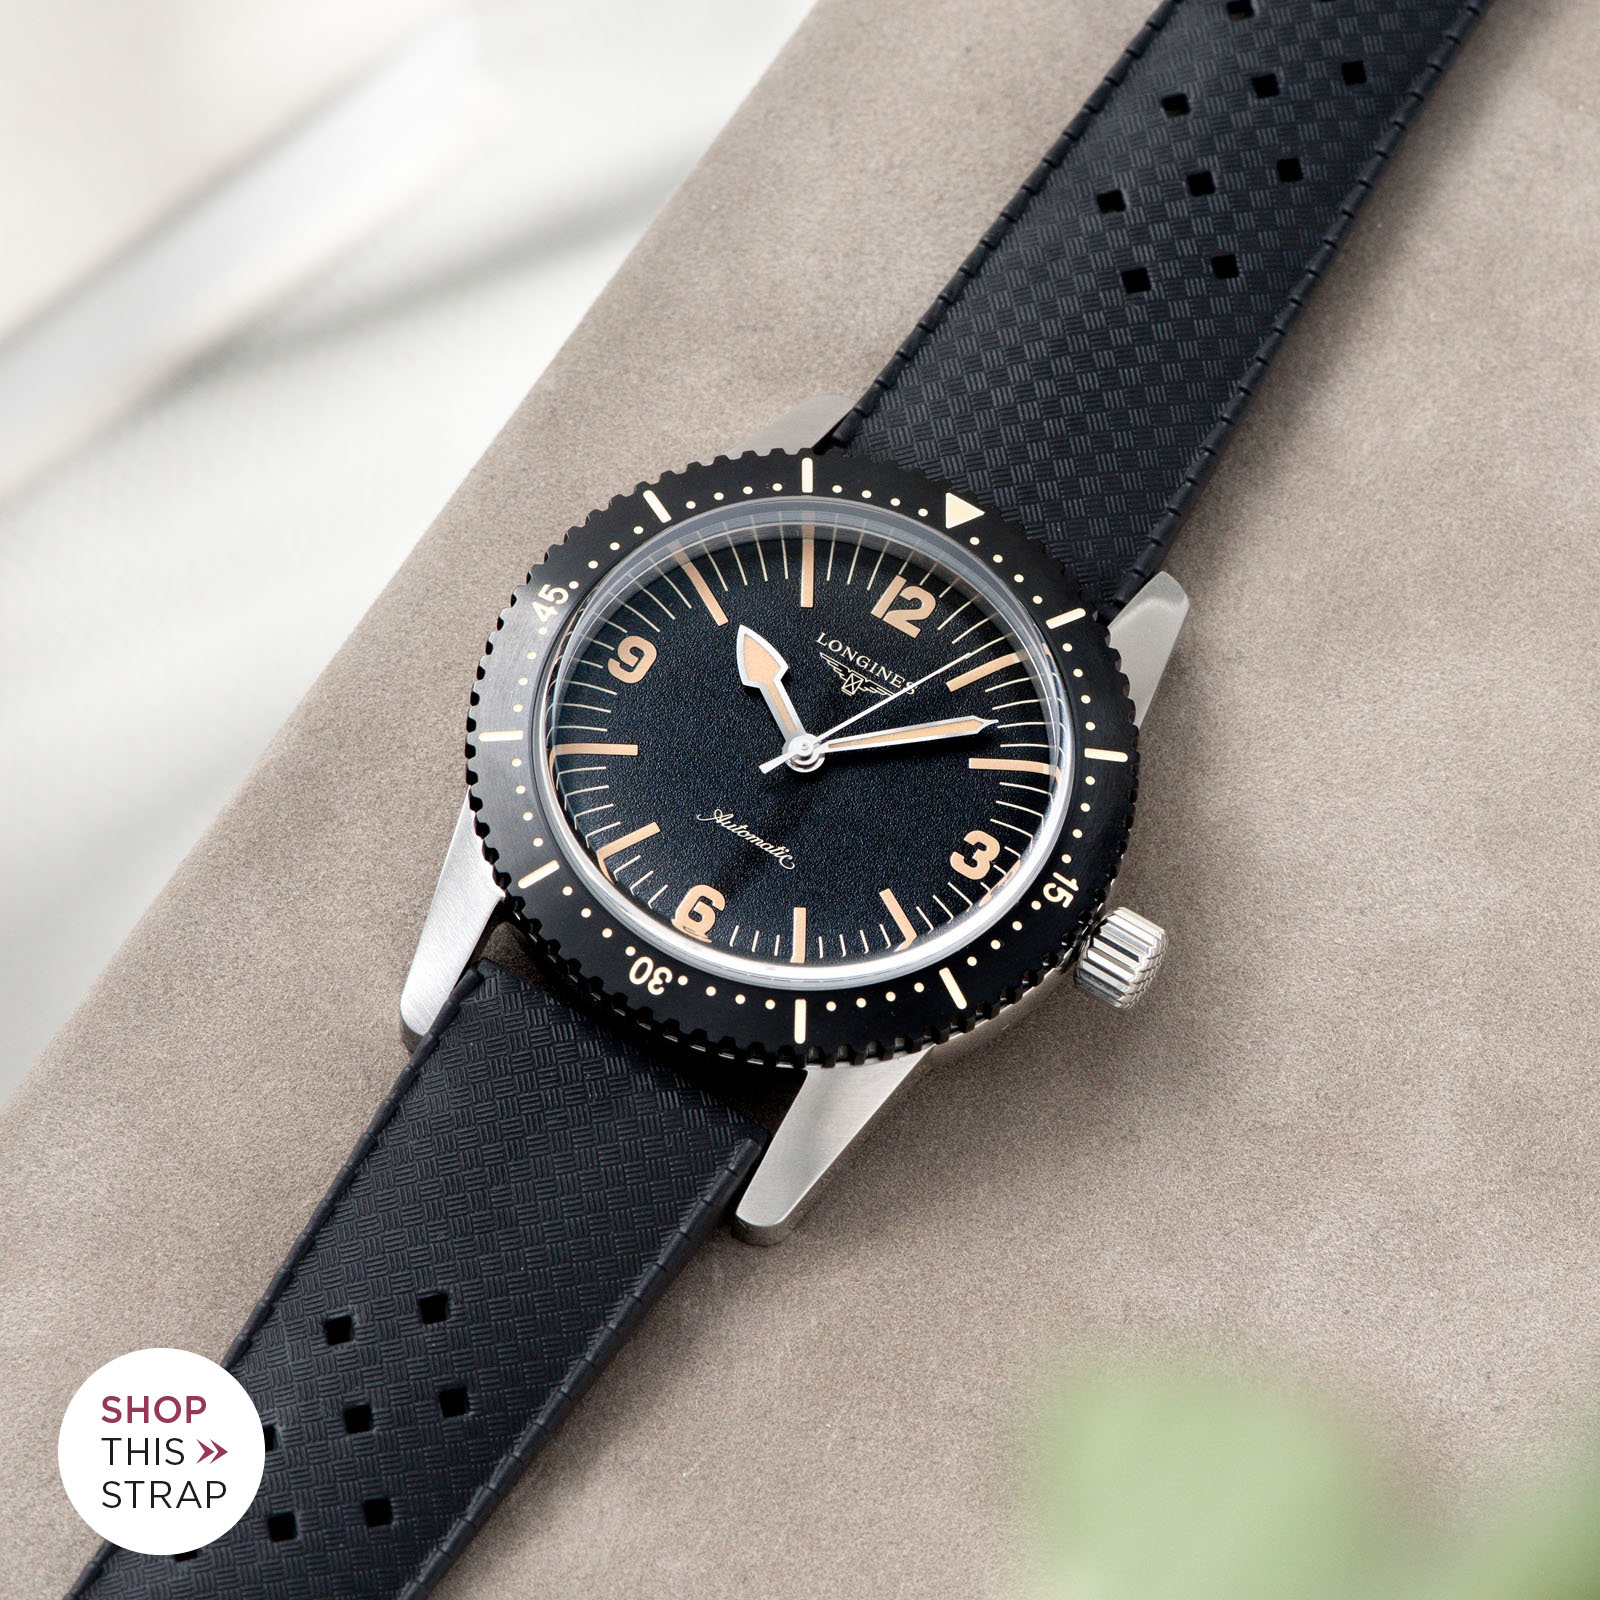 Bulang and Sons_Strap Guide_Longines Skin Diver_autic Basket Weave Black Rubber Watch Strap